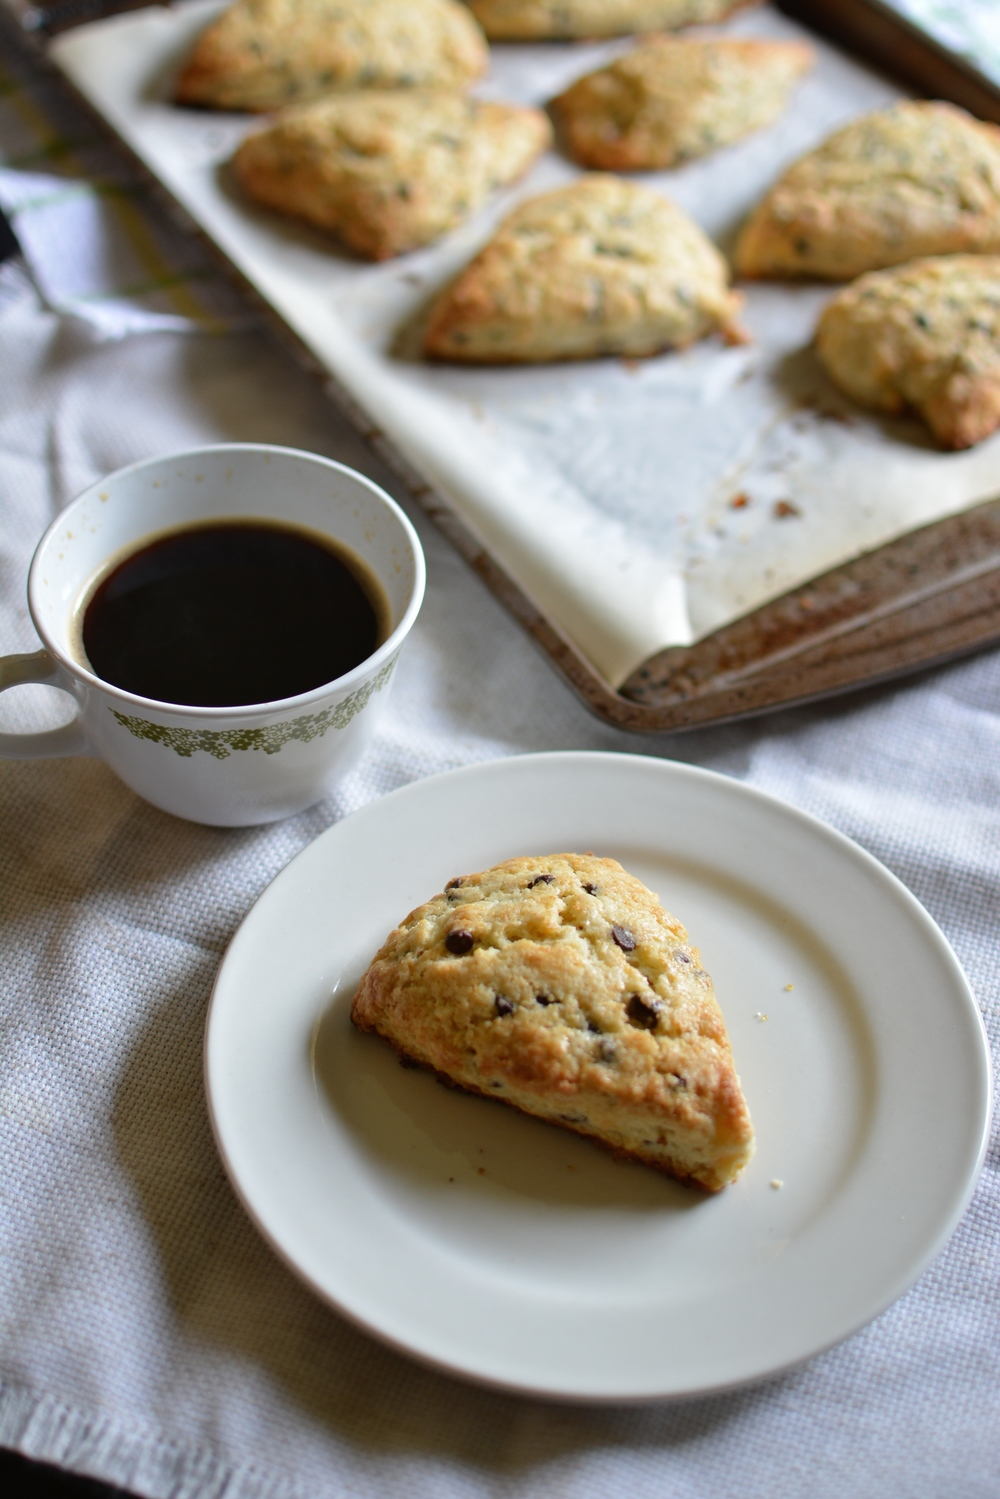 Chocolate Chip Orange Zest Scones